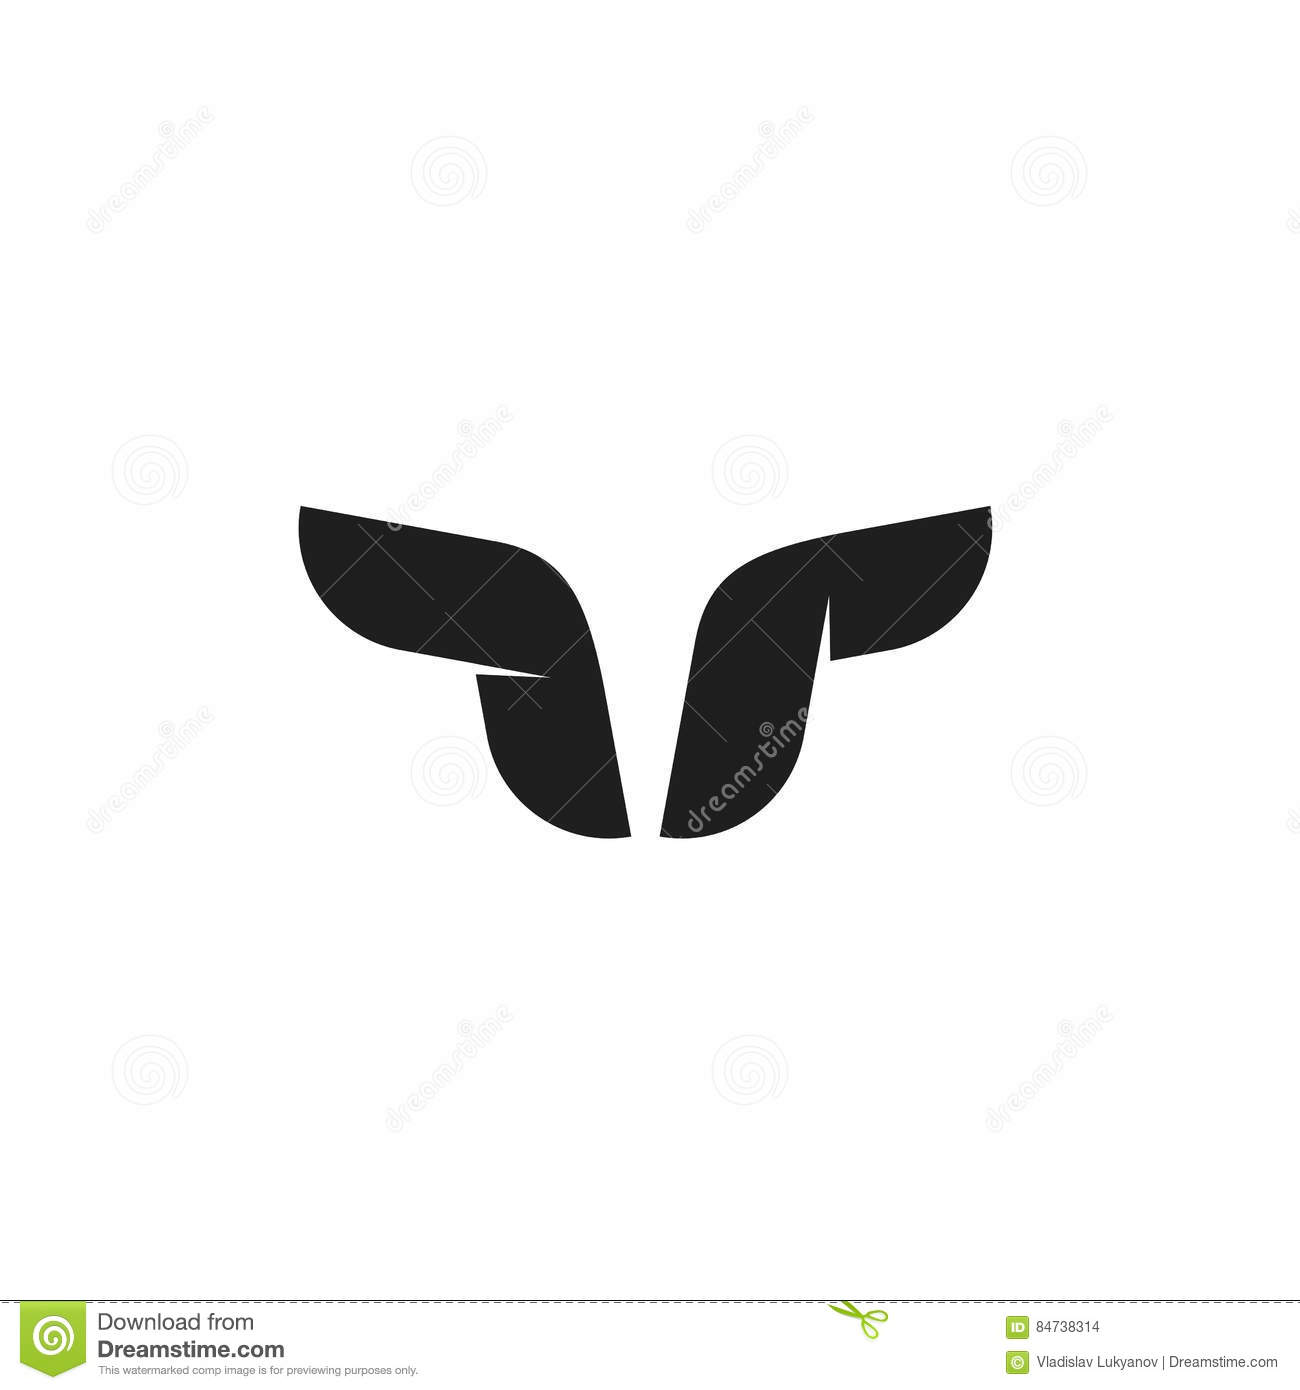 bull logo vector symbol buffalo horns geometric taurus head shape